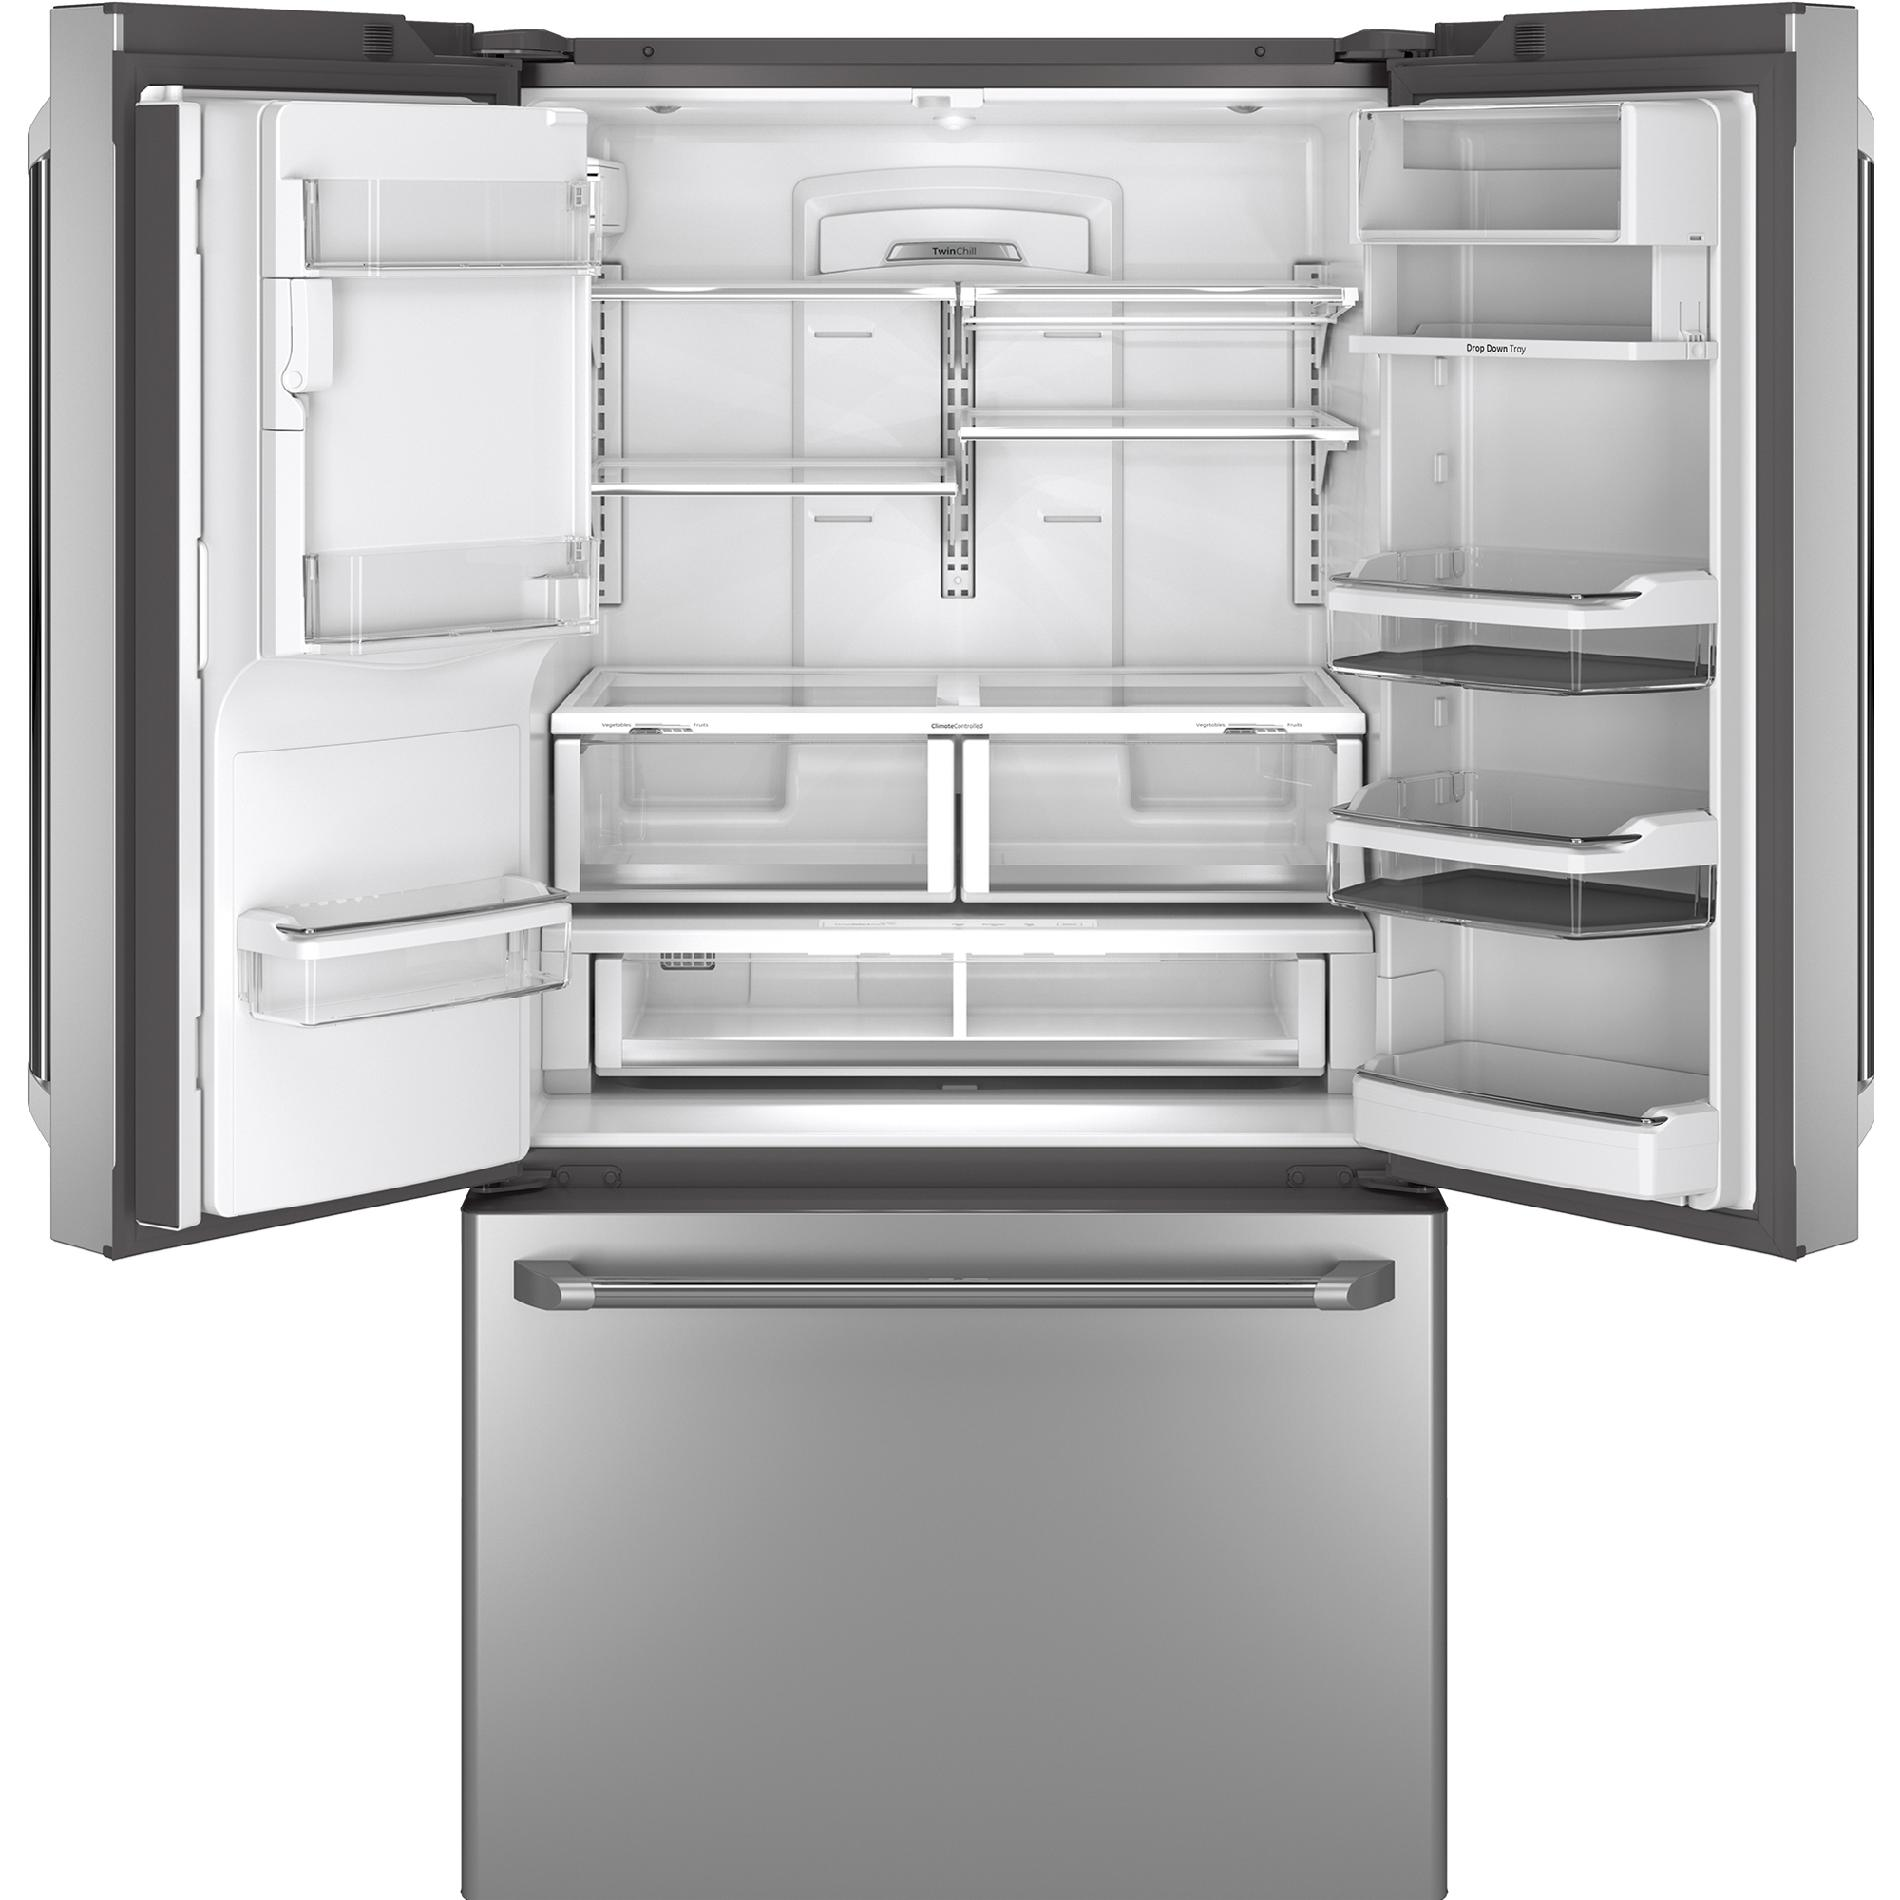 GE Cafe™ Series CFE28TSHSS 27.8 cu. ft. French-Door Refrigerator W/ Hot Water Dispenser - Stainless Steel